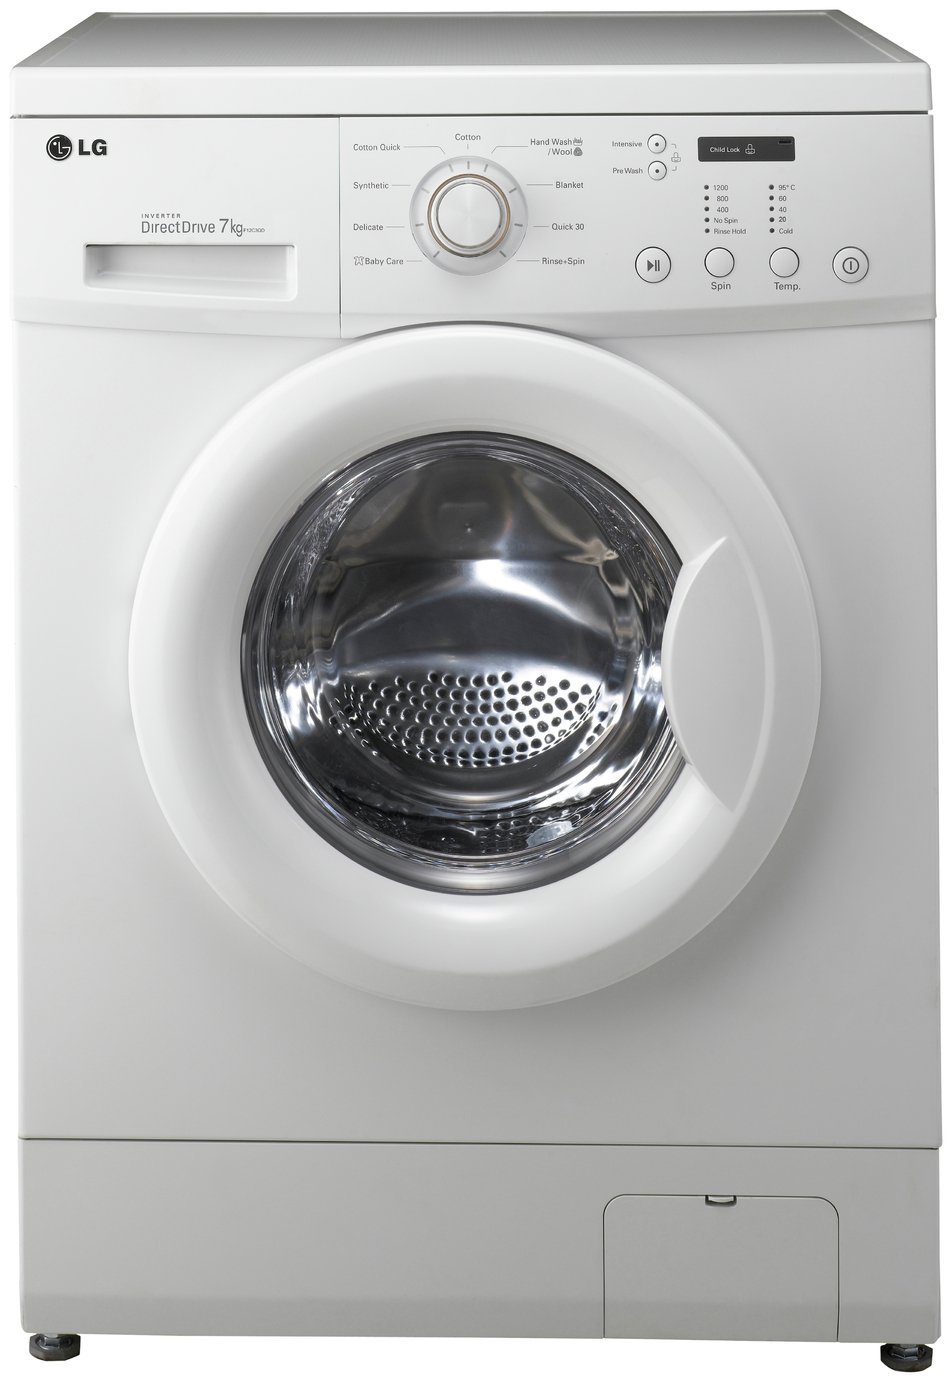 lg washing machine. buy lg f12c3qd 7kg 1200 spin washing machine - white at argos.co.uk your online shop for machines, large kitchen appliances, home and garden. lg